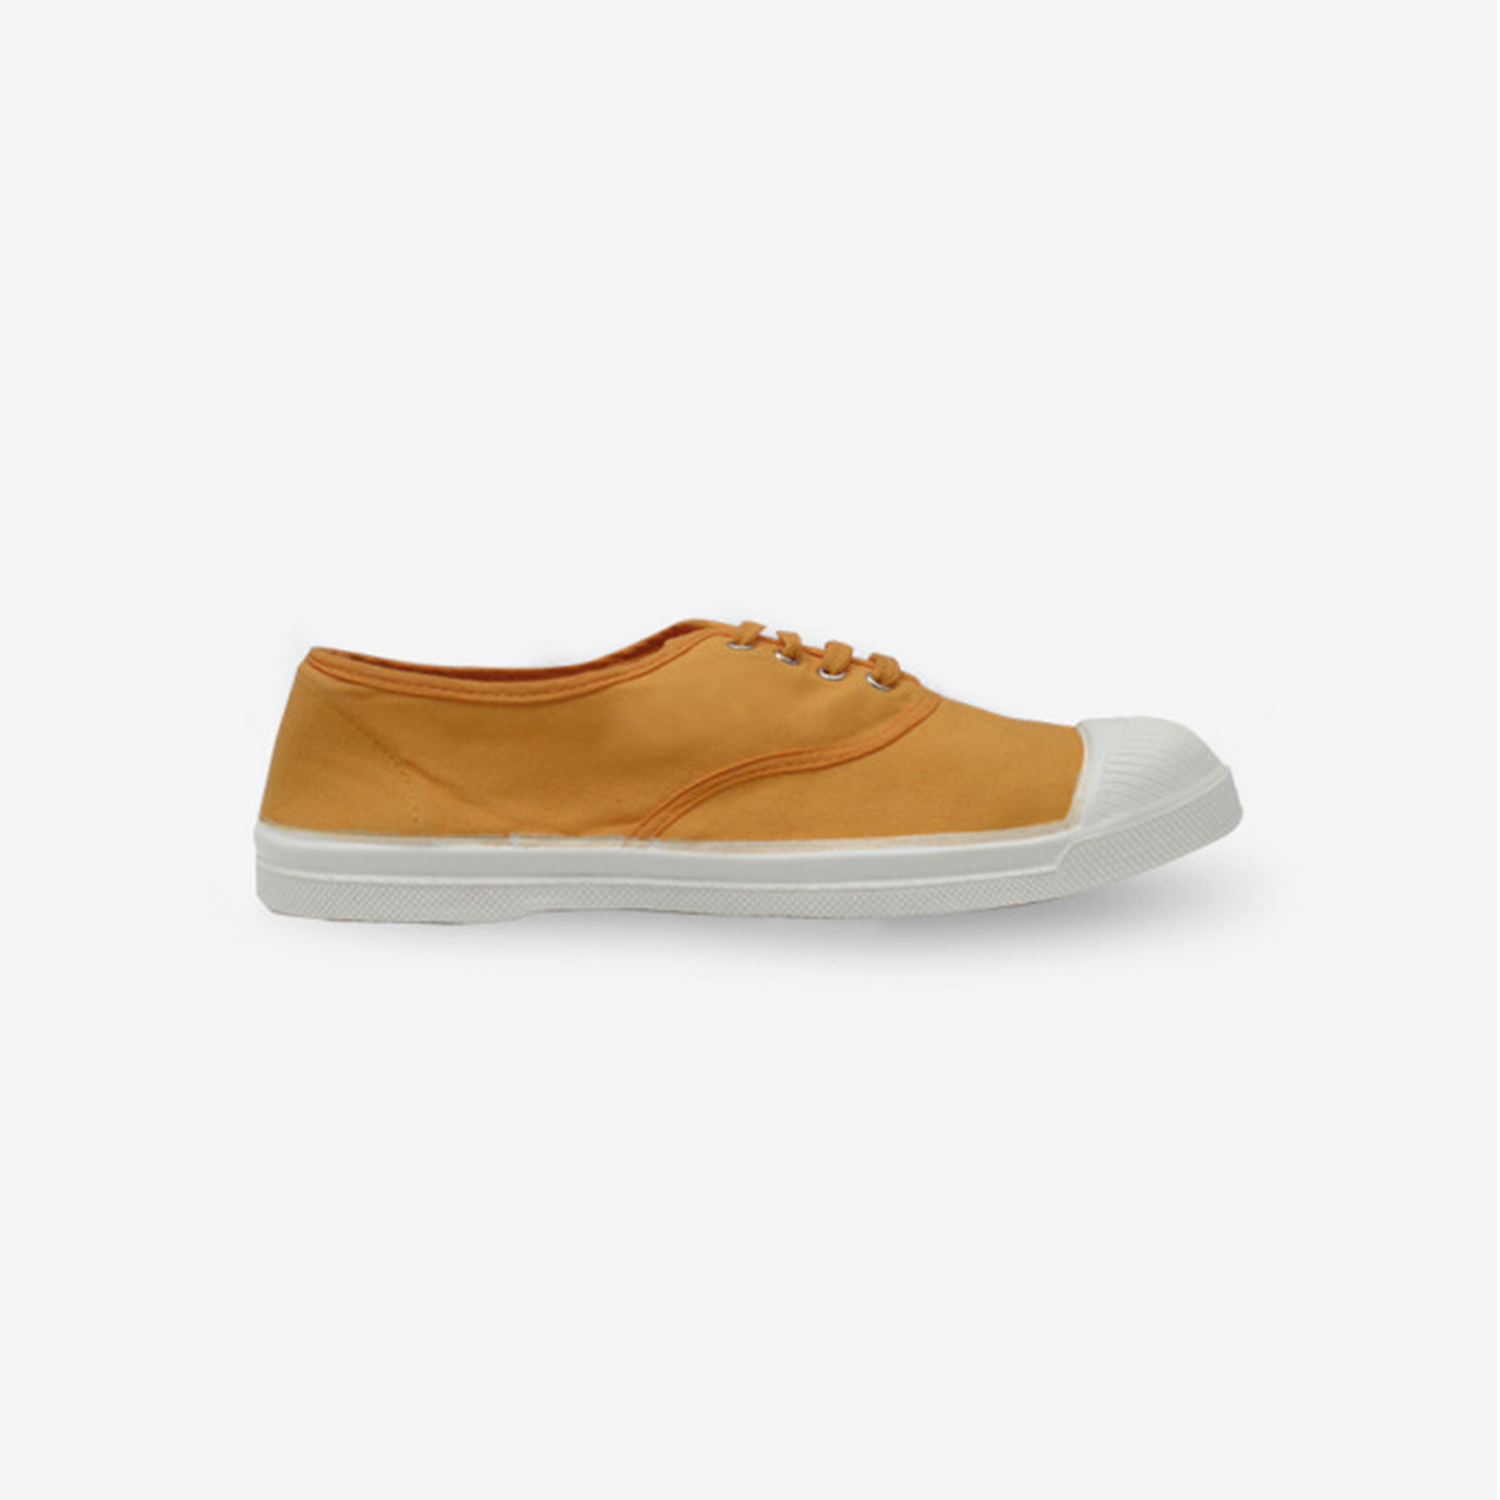 Ben Simon- Tennis shoes- Ochre